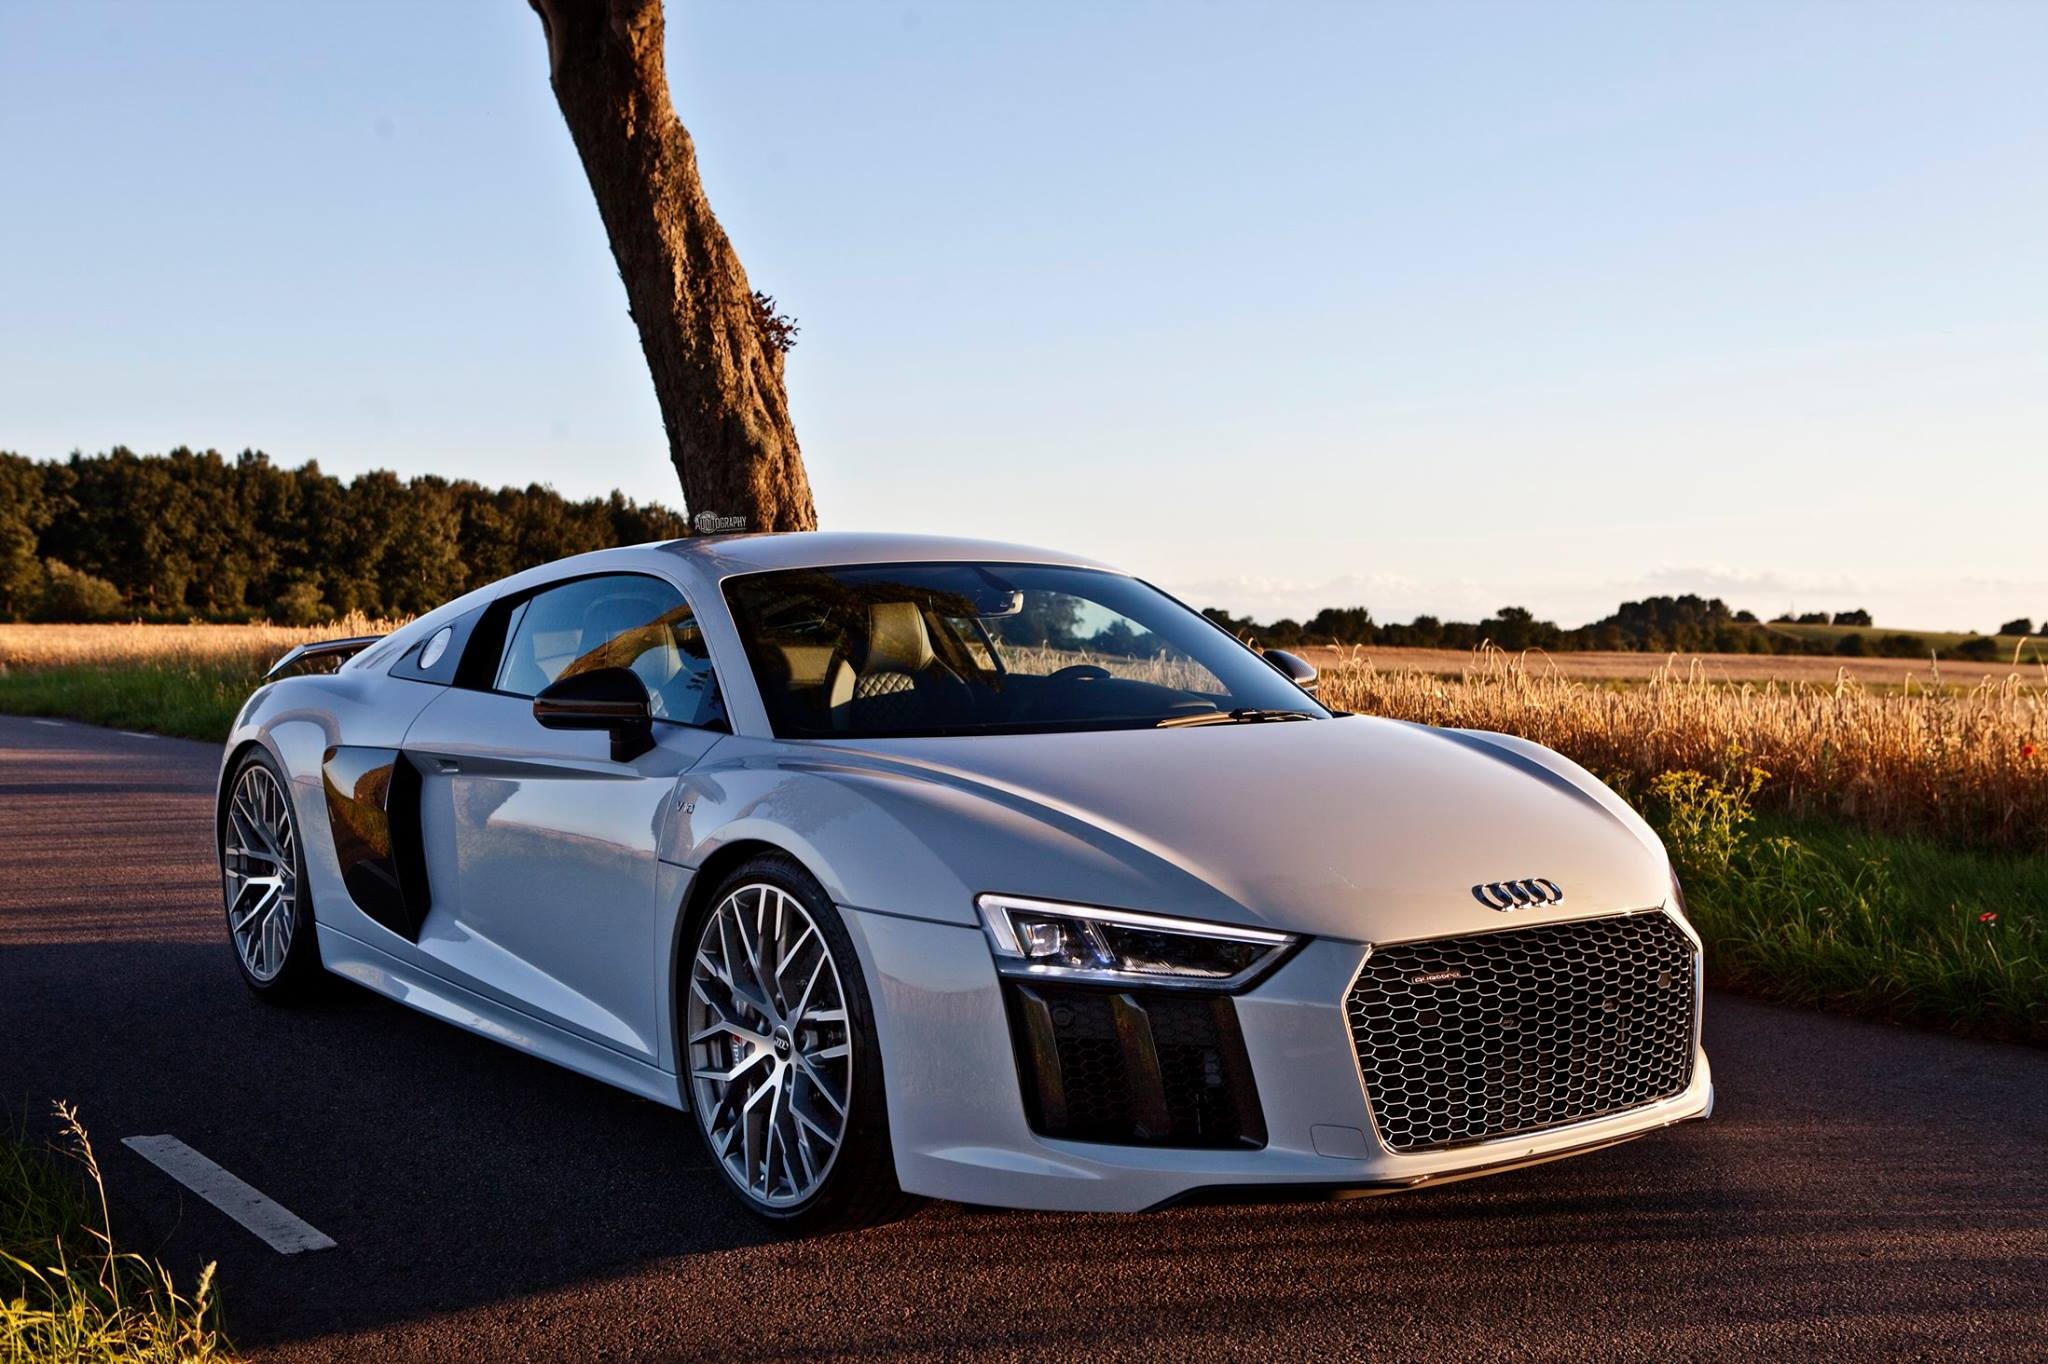 2017 Audi R8 V10 Plus Supercar